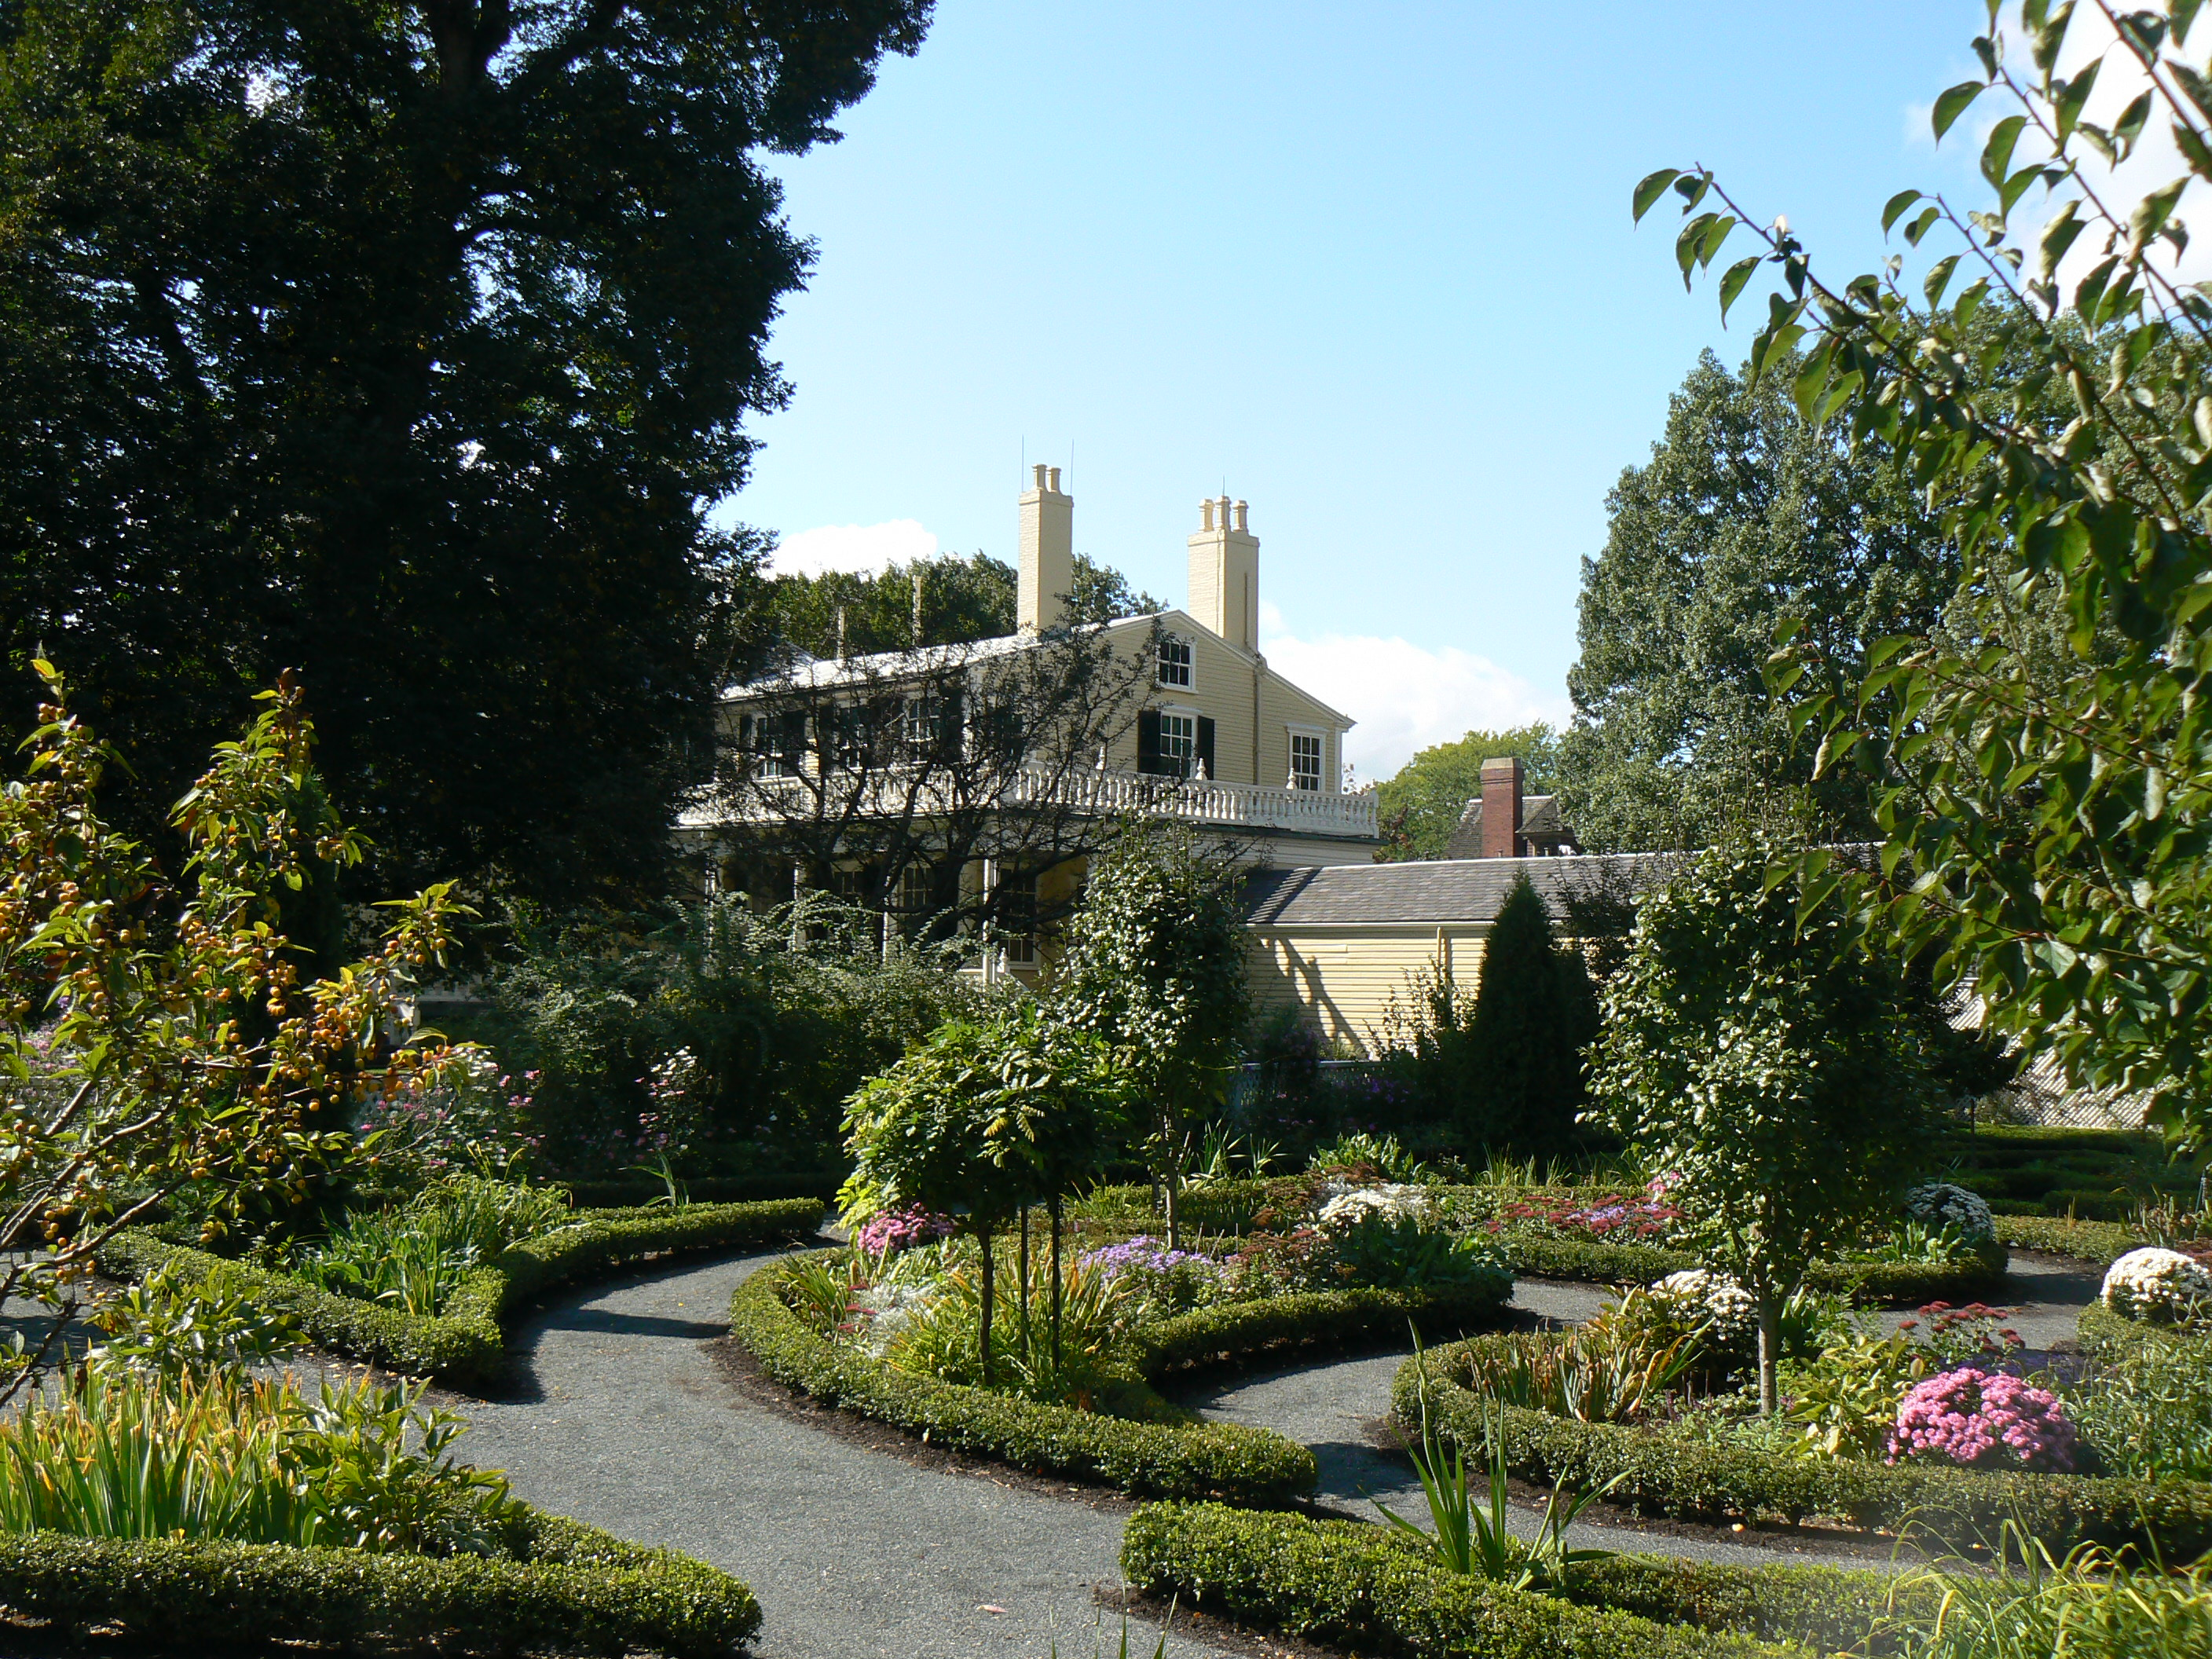 Longfellow house garden. Image by Midnightdreary. Licensed under CC BY-SA 3.0 via Wikimedia Commons.